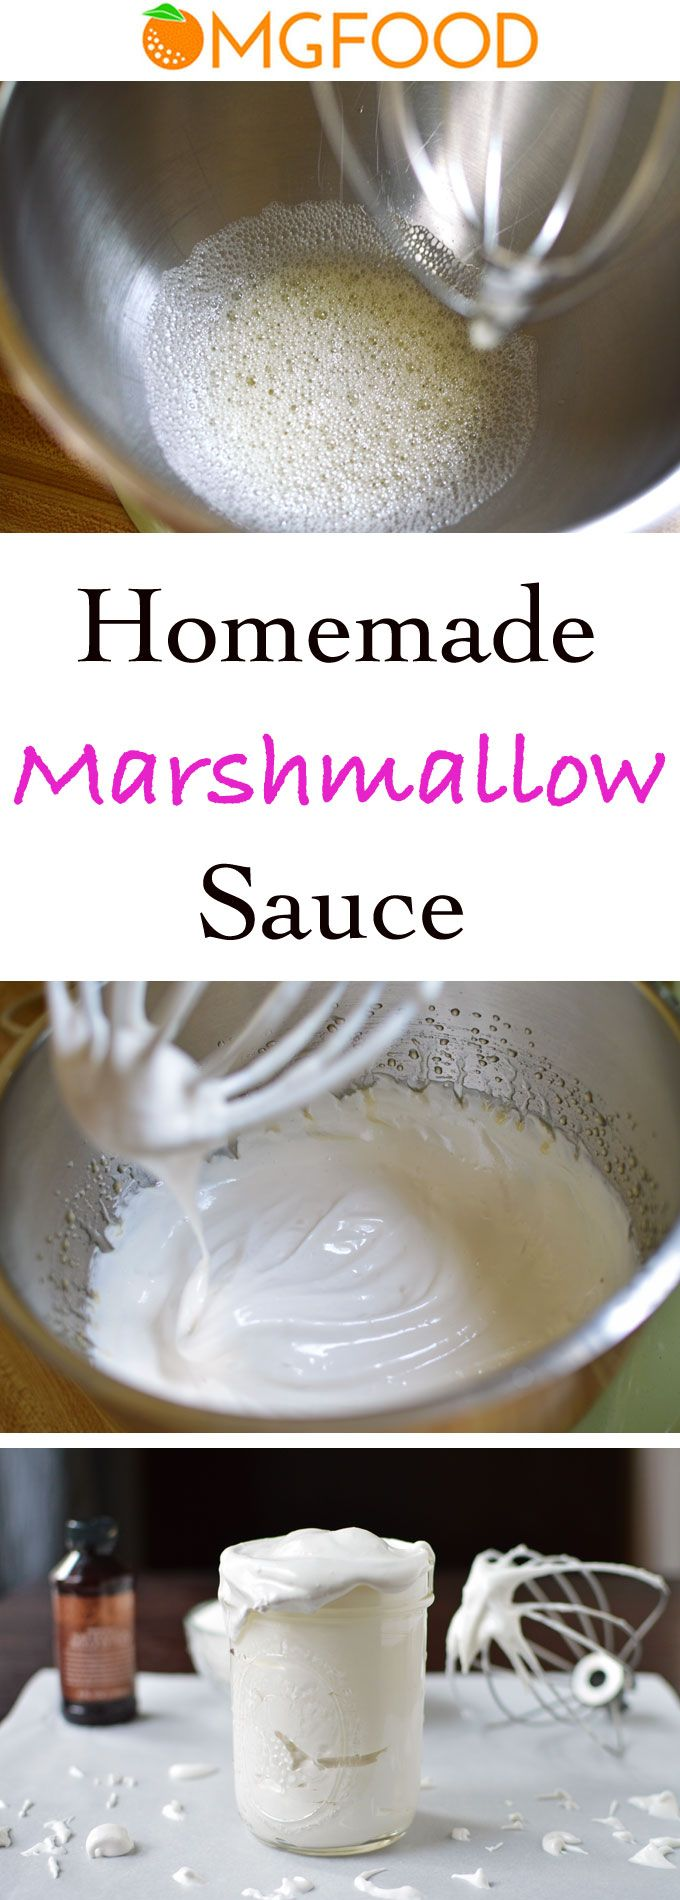 Made with just a few common kitchen ingredients, this homemade marshmallow sauce is easy to make and can be done in a pinch! Use in desserts or make fluffernutters! | omgfood.com